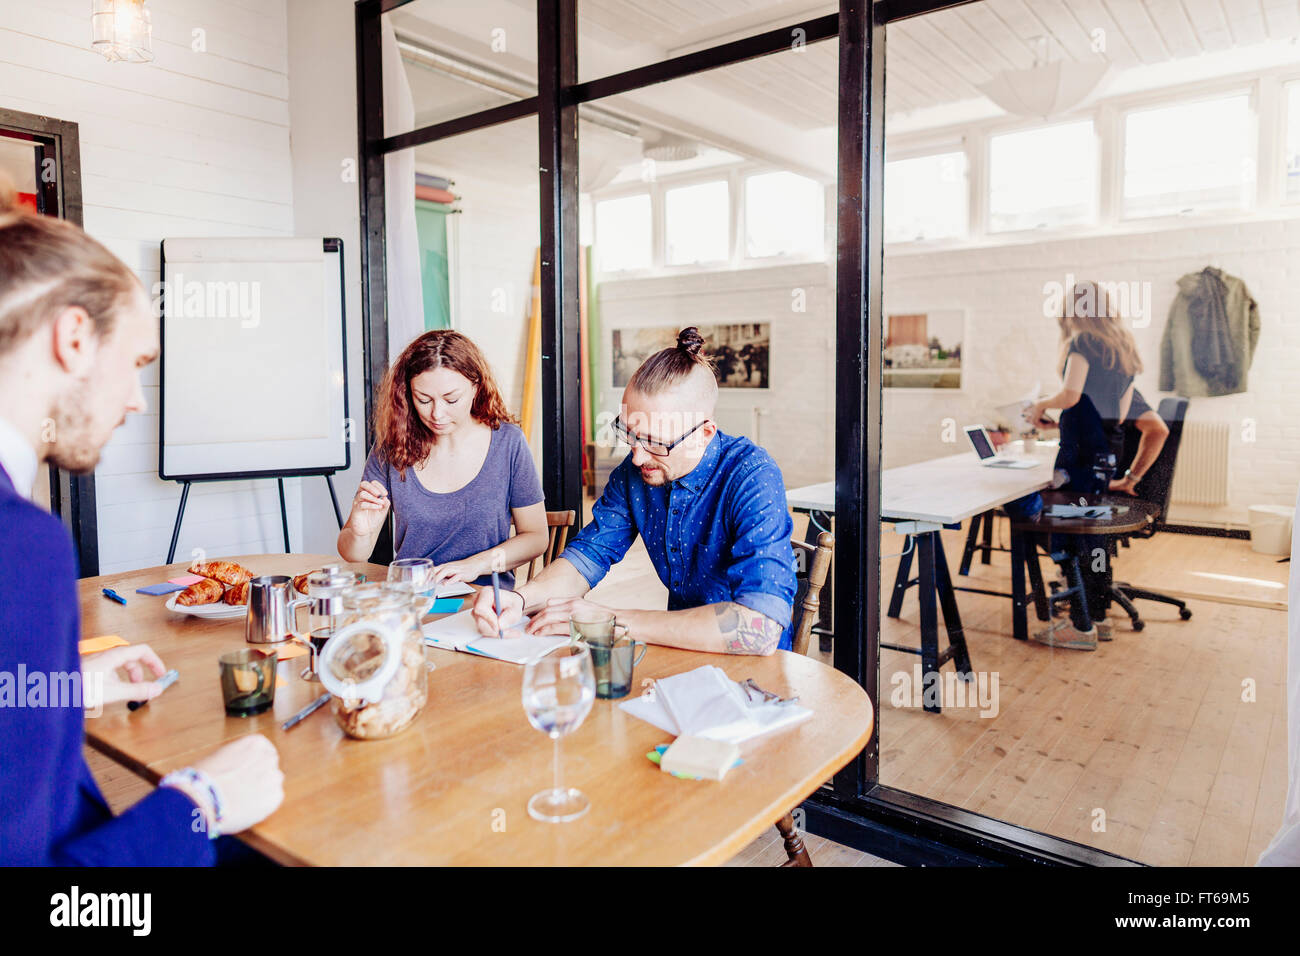 Creative business people working at table in background Photo Stock